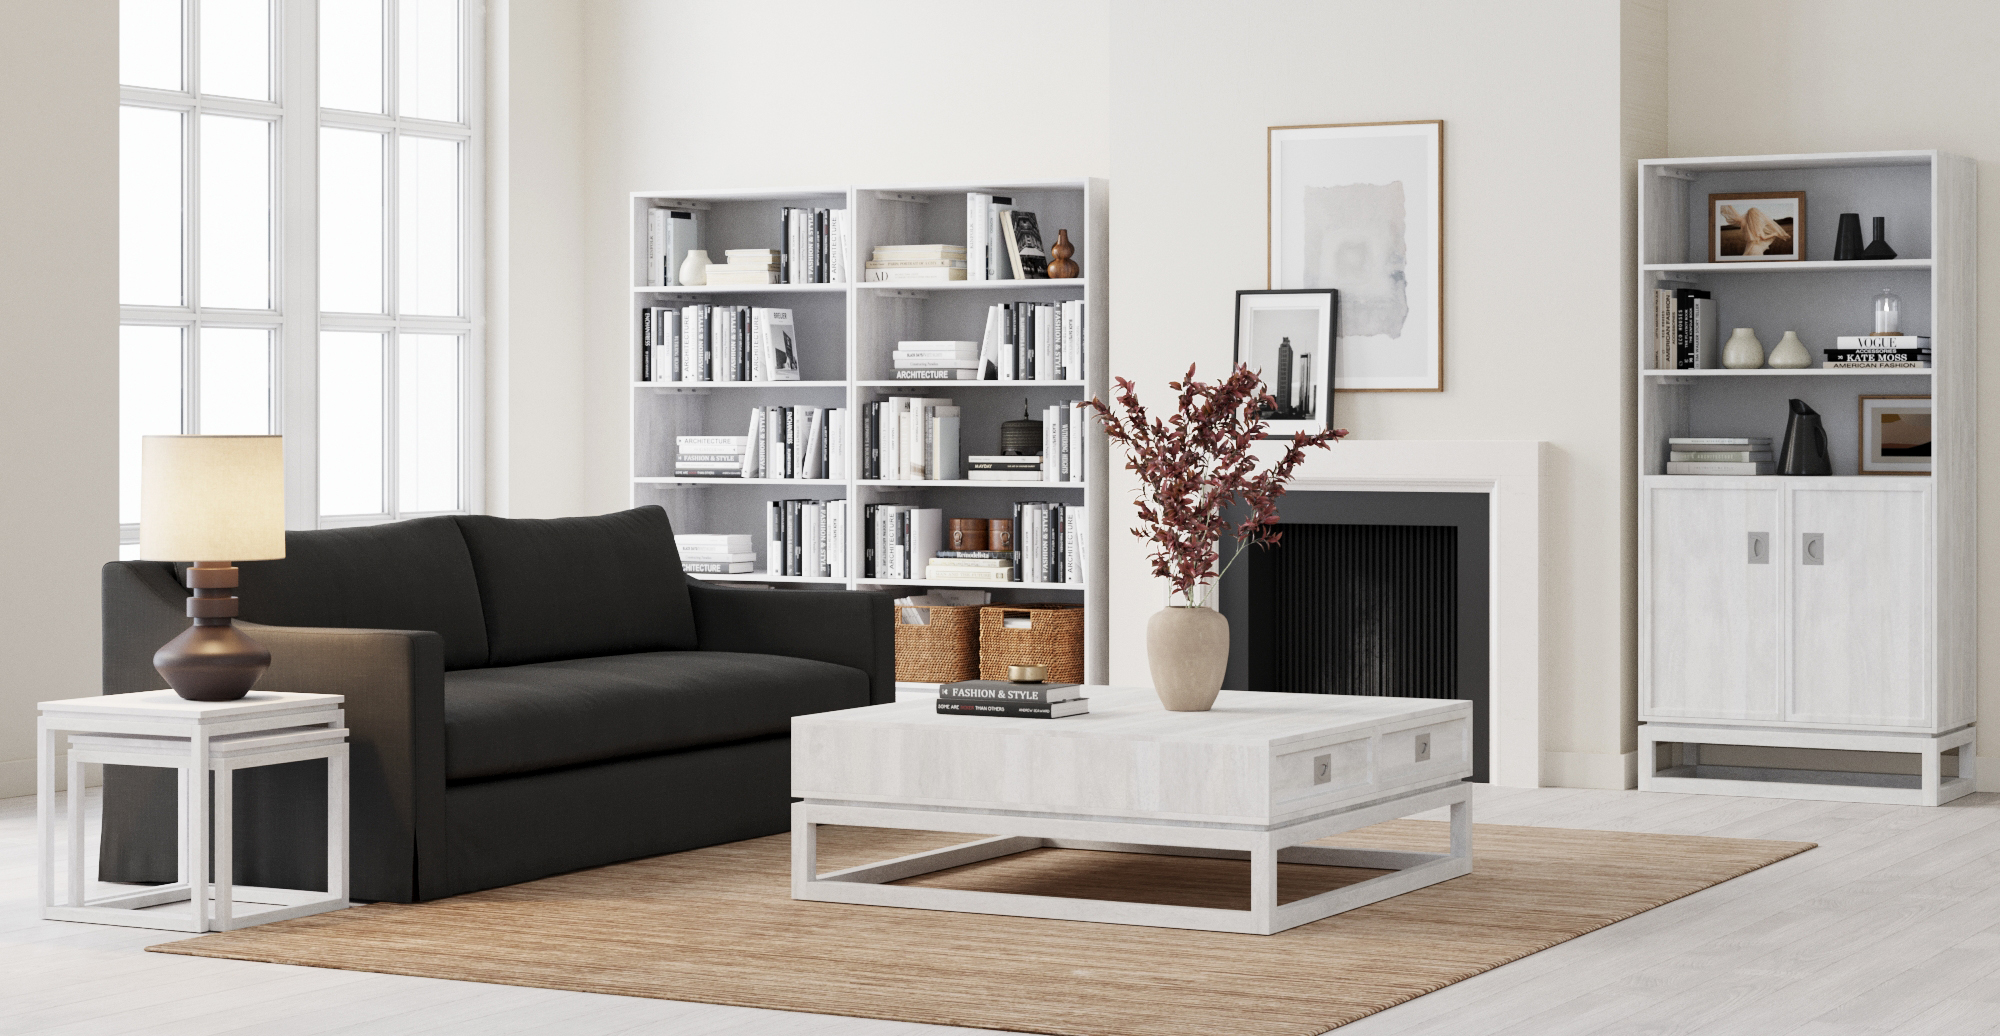 Monterey Hamptons Style Bookcase styled in Hamptons living room